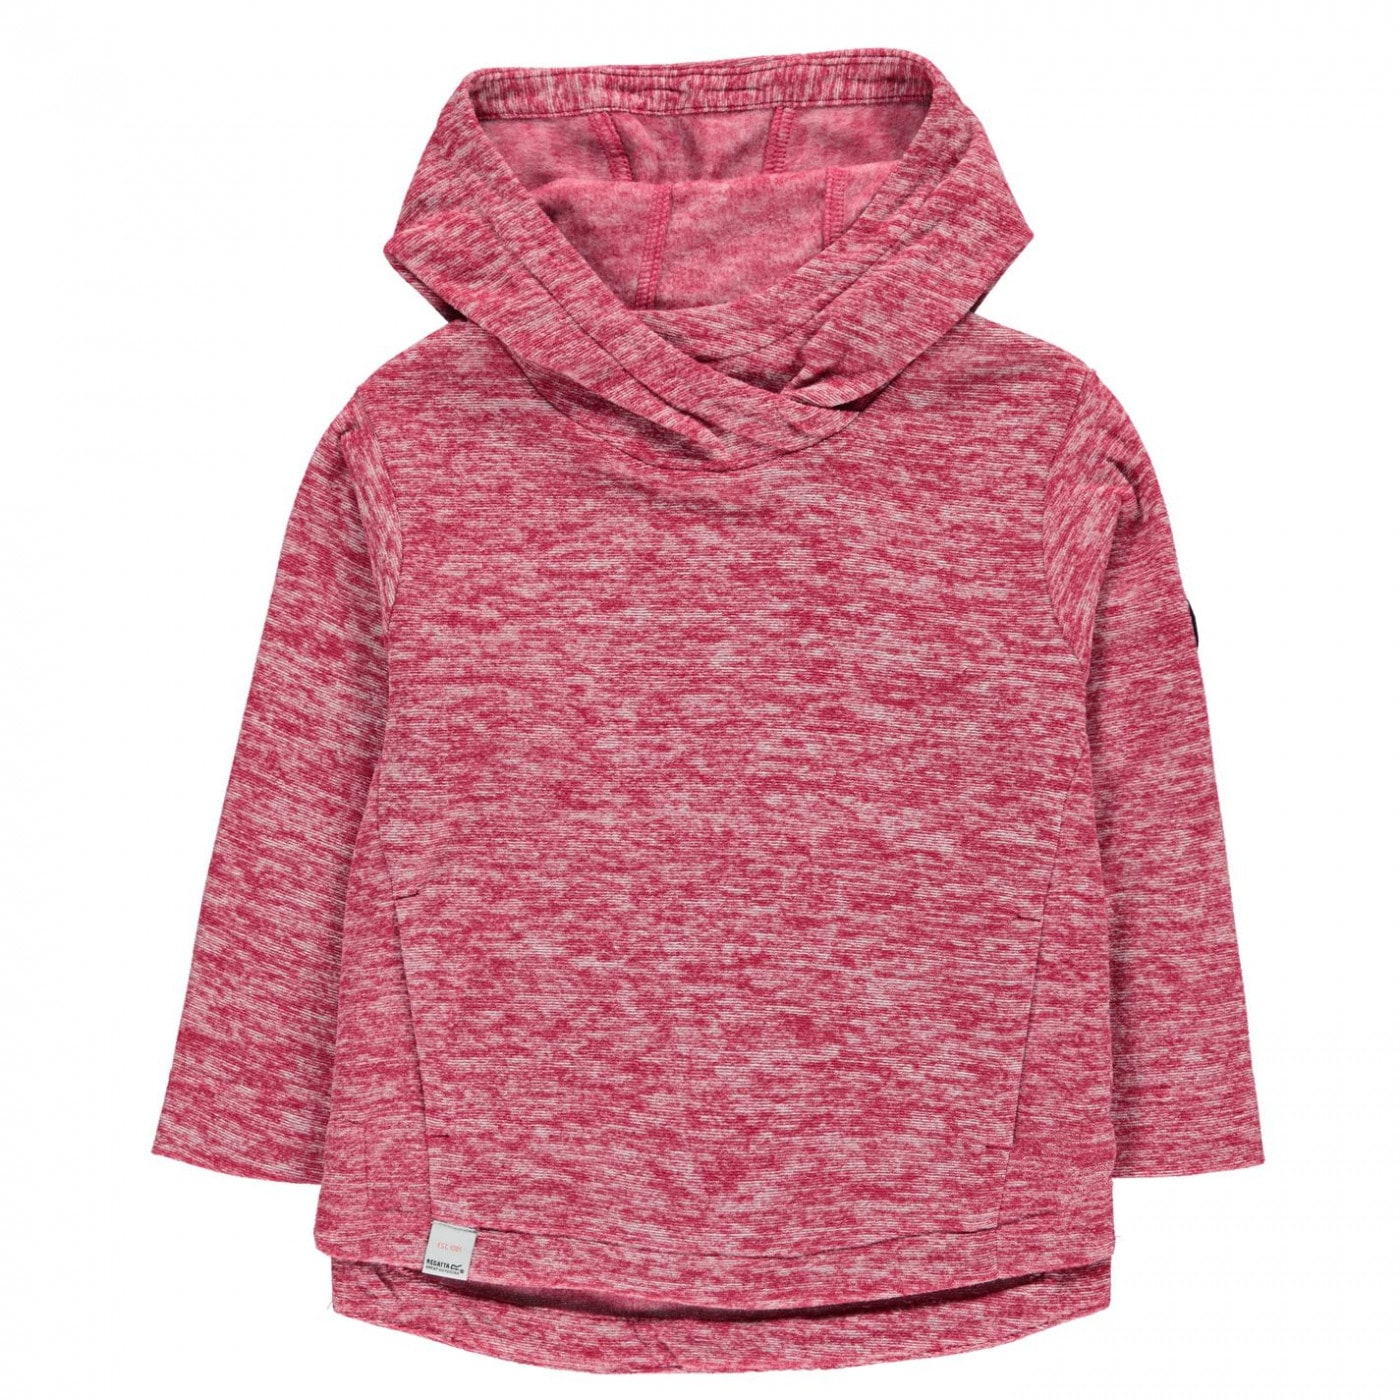 Regatta Kalina Fleece Hoody Junior Girls